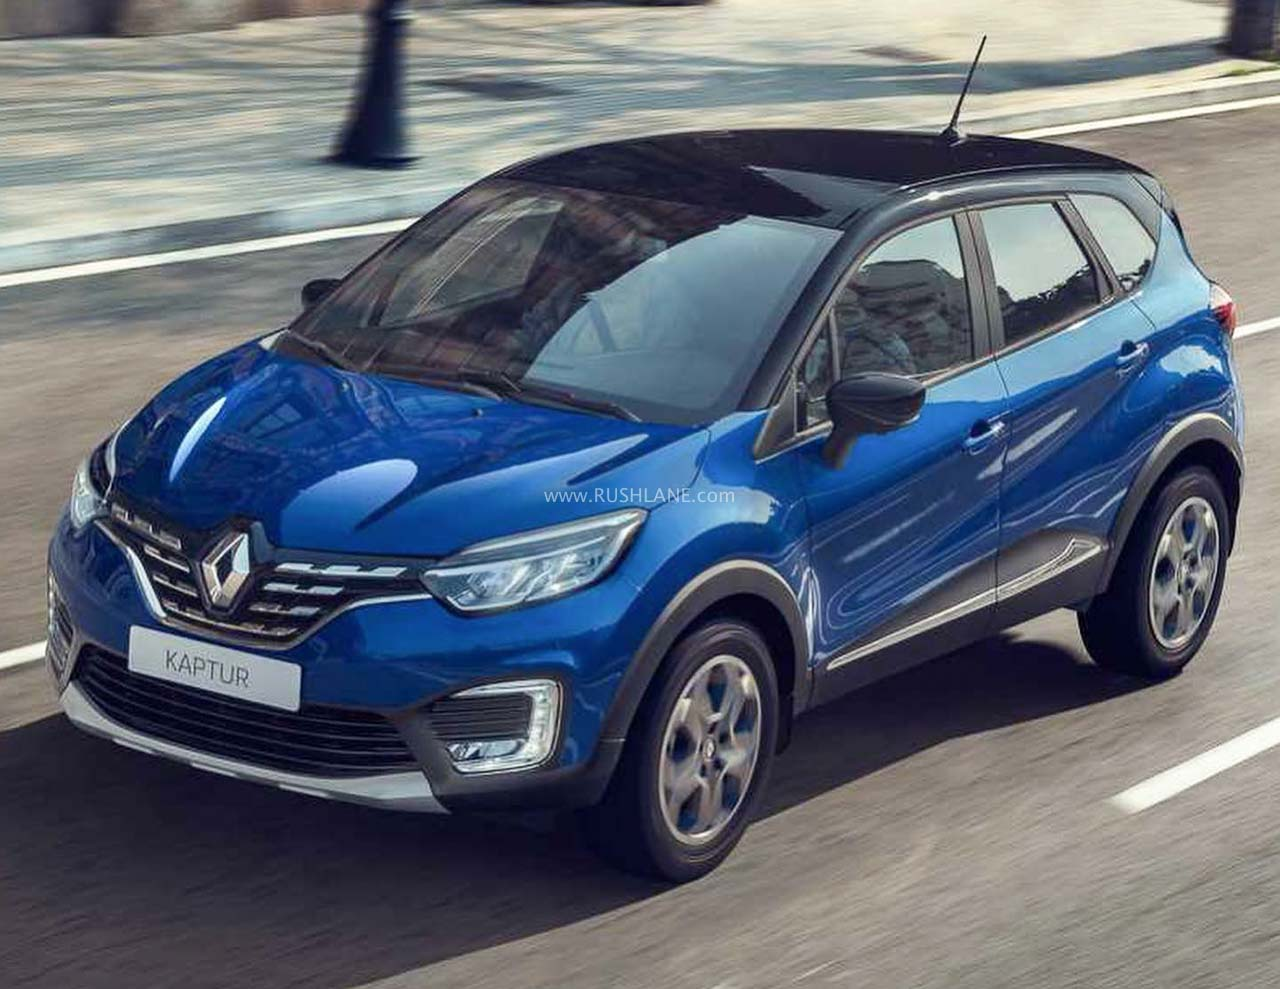 Renault Captur discontinued in India – No BS6 update